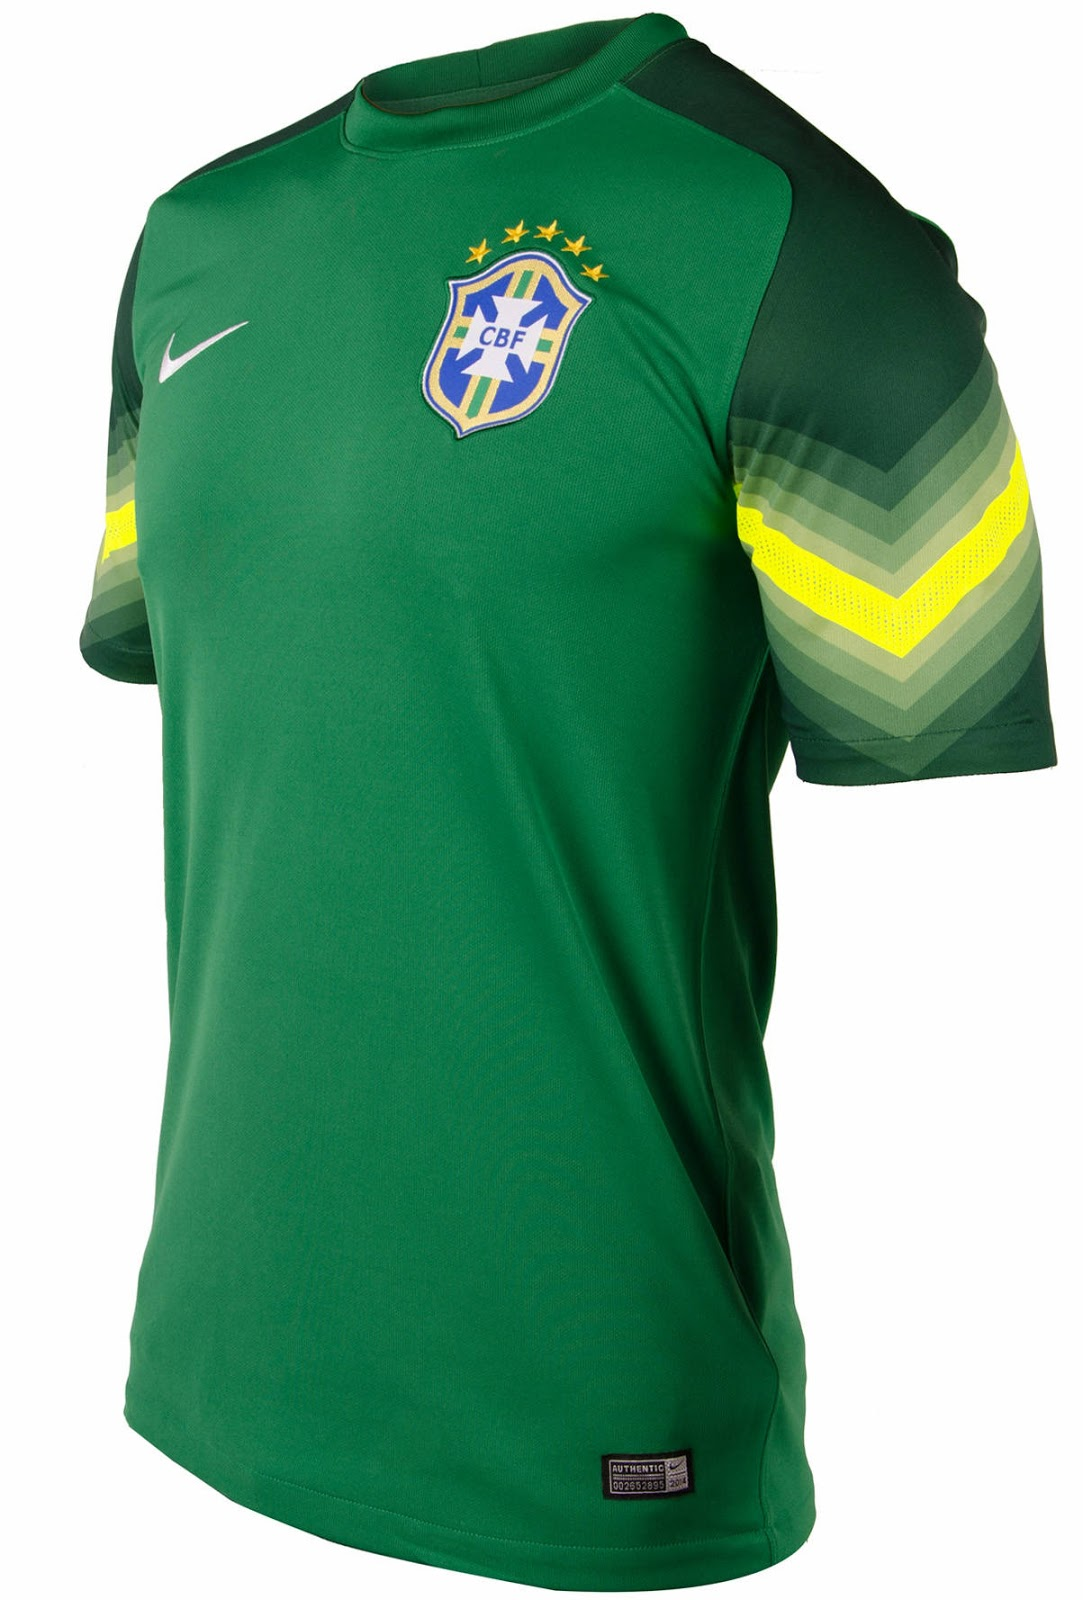 Brazil 2014 World Cup Home And Away Kits Released Footy